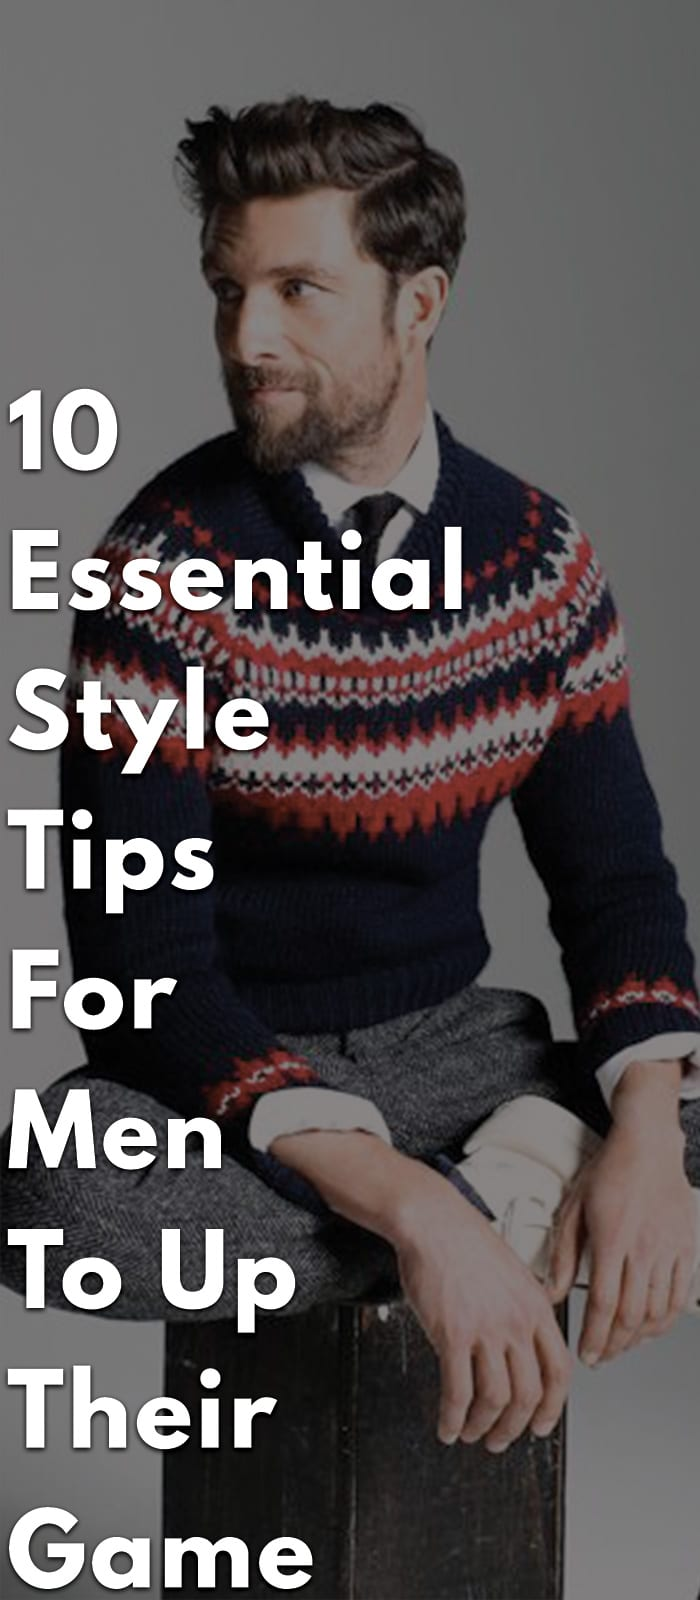 10-Essential-Style-Tips-for-Men-to-Up-Their-Game